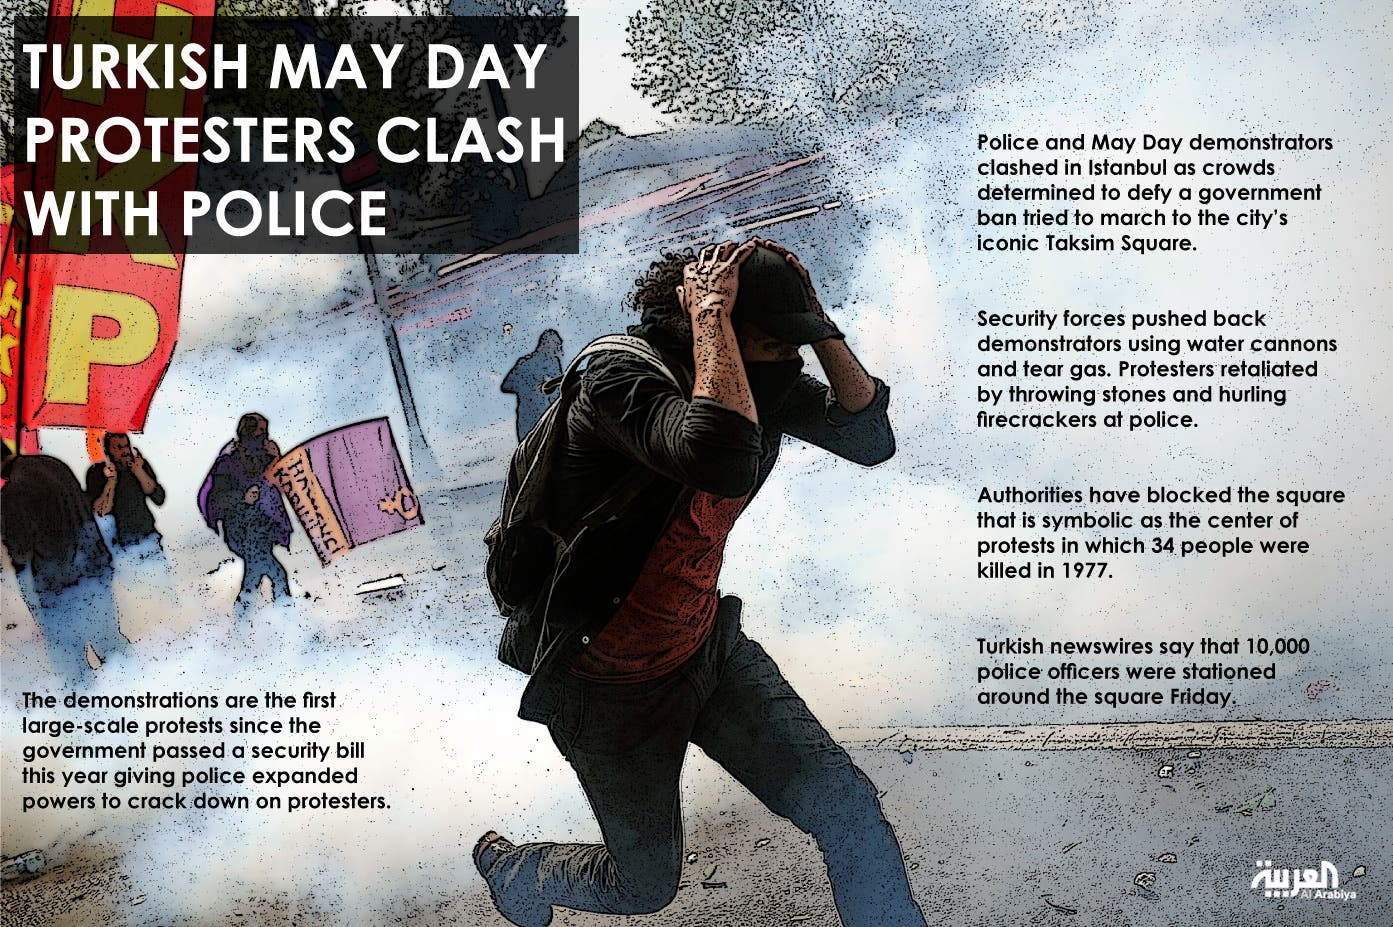 Infographic: Turkish May Day protesters clash with police